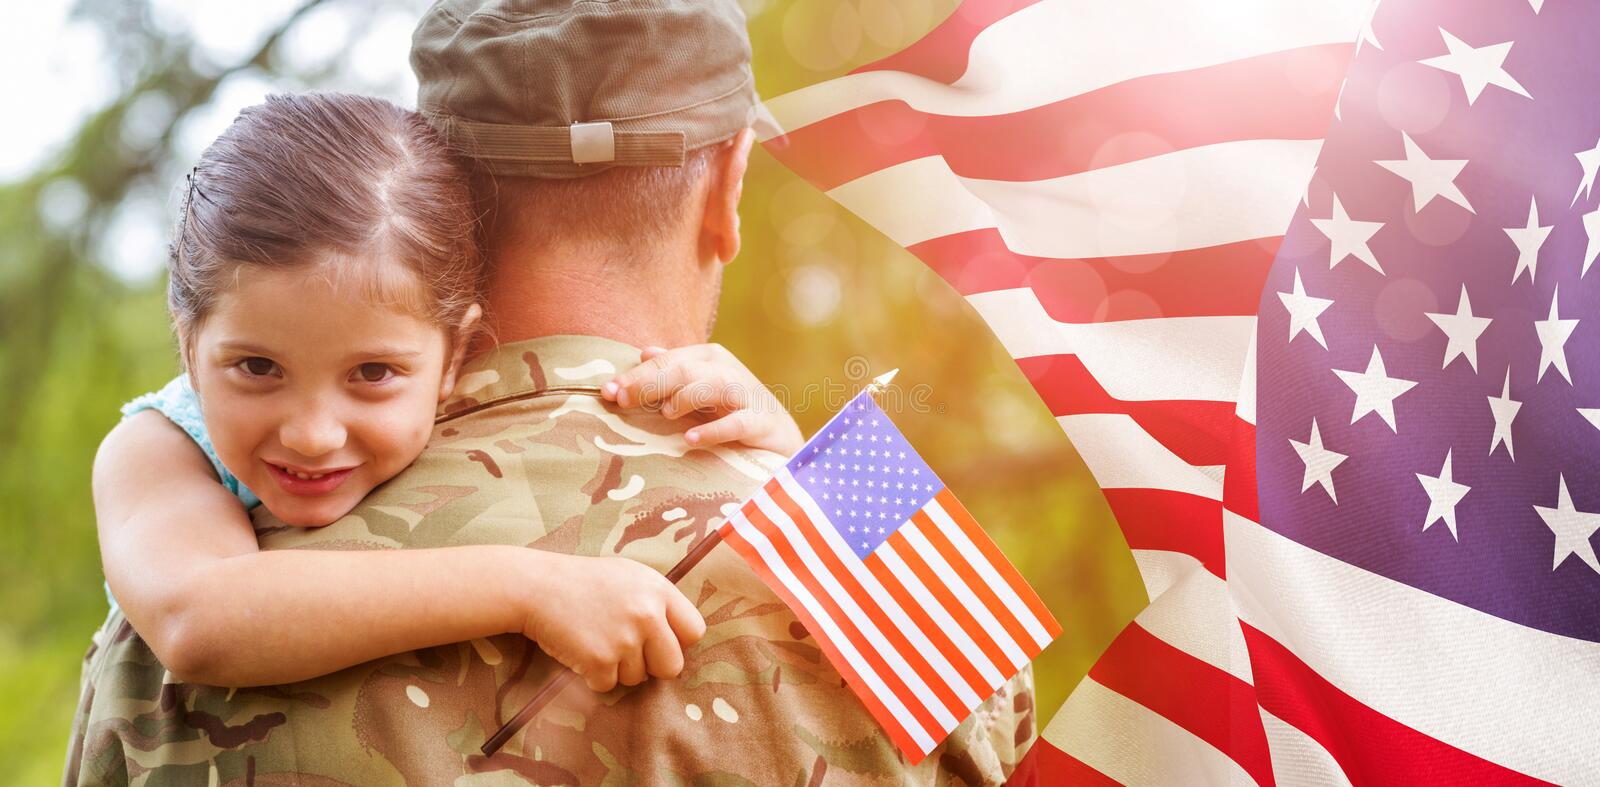 Composite image of portrait of girl hugging army officer father. Portrait of girl hugging army officer father against focus on usa flag royalty free stock image